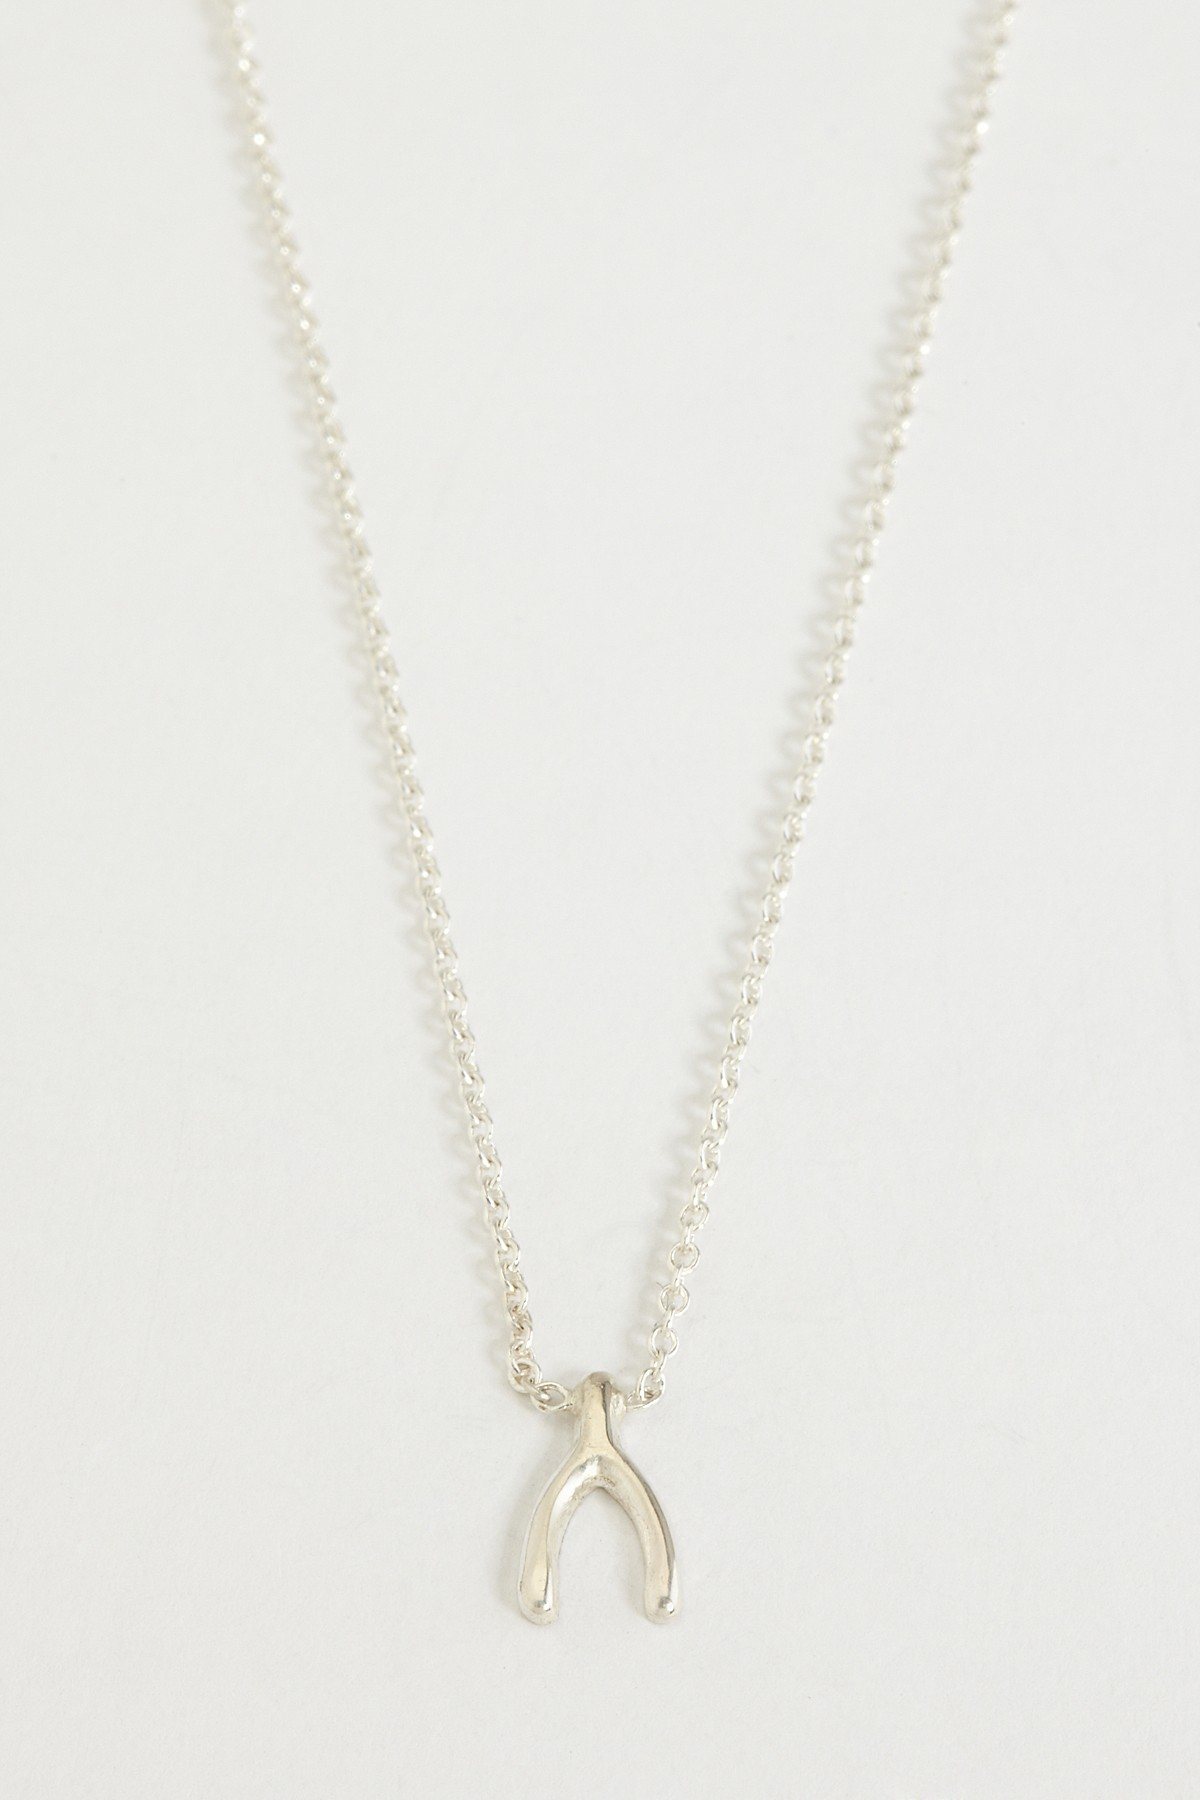 Zoe Chicco | Wishbone Necklace – Sterling Silver | Nordstrom Rack With Regard To 2019 Polished Wishbone Necklaces (View 25 of 25)